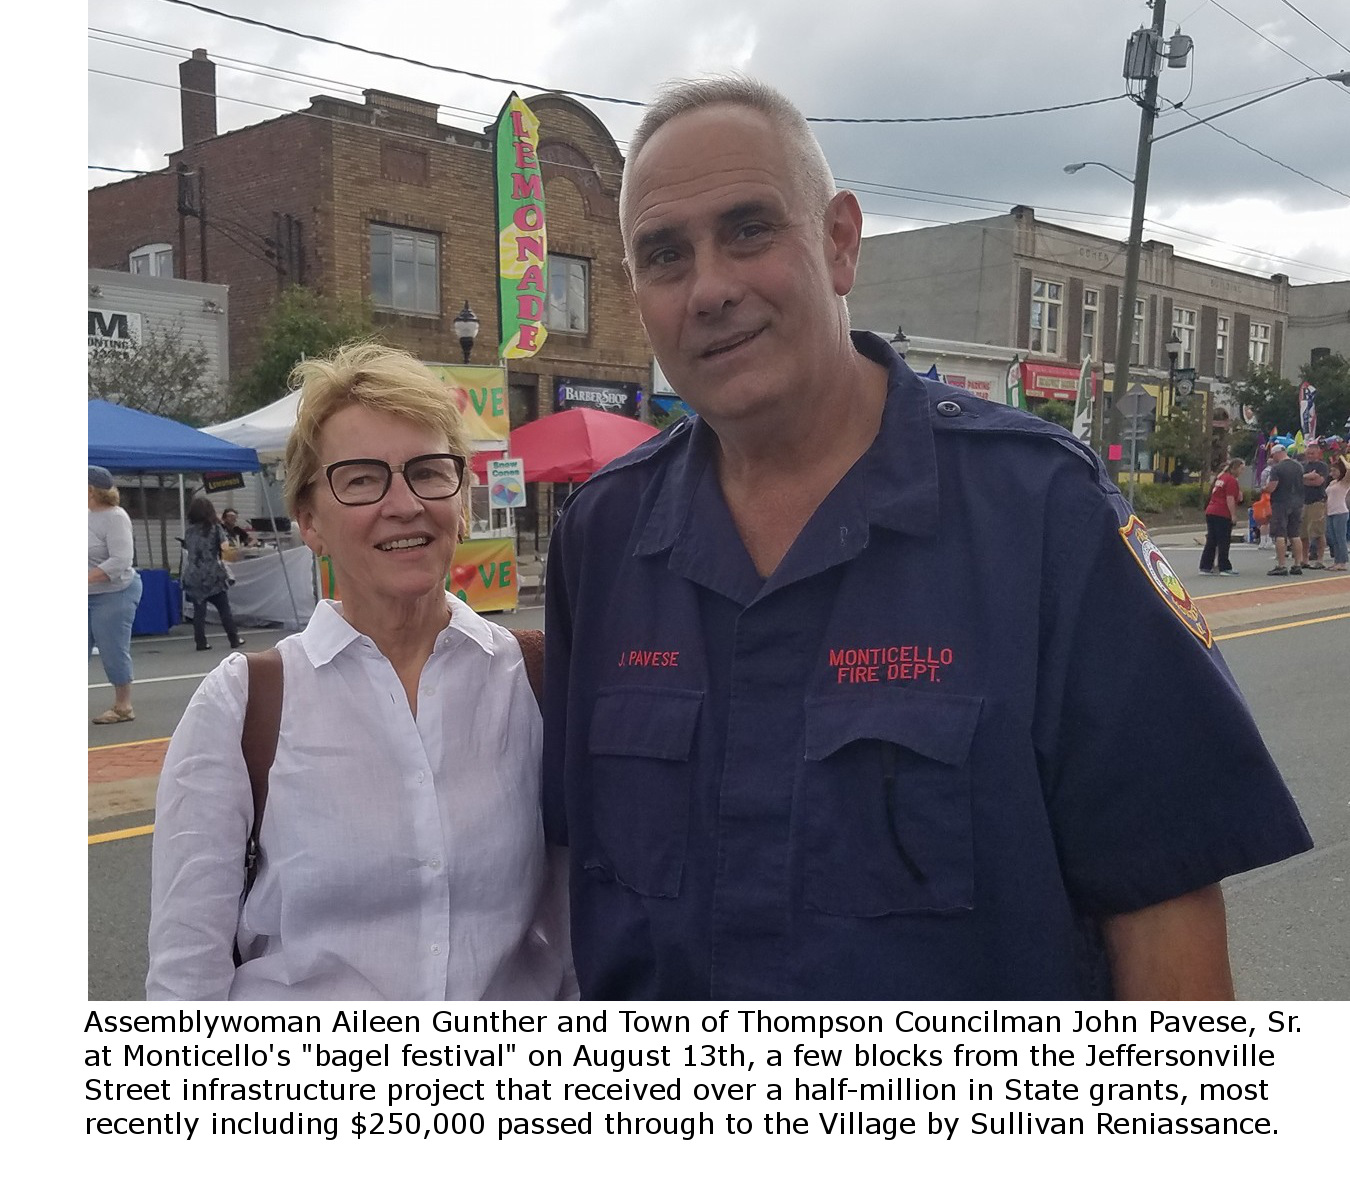 Assemblywoman Aileen Gunther and Thompson Councilman John Pavese, Sr. at Monticello's